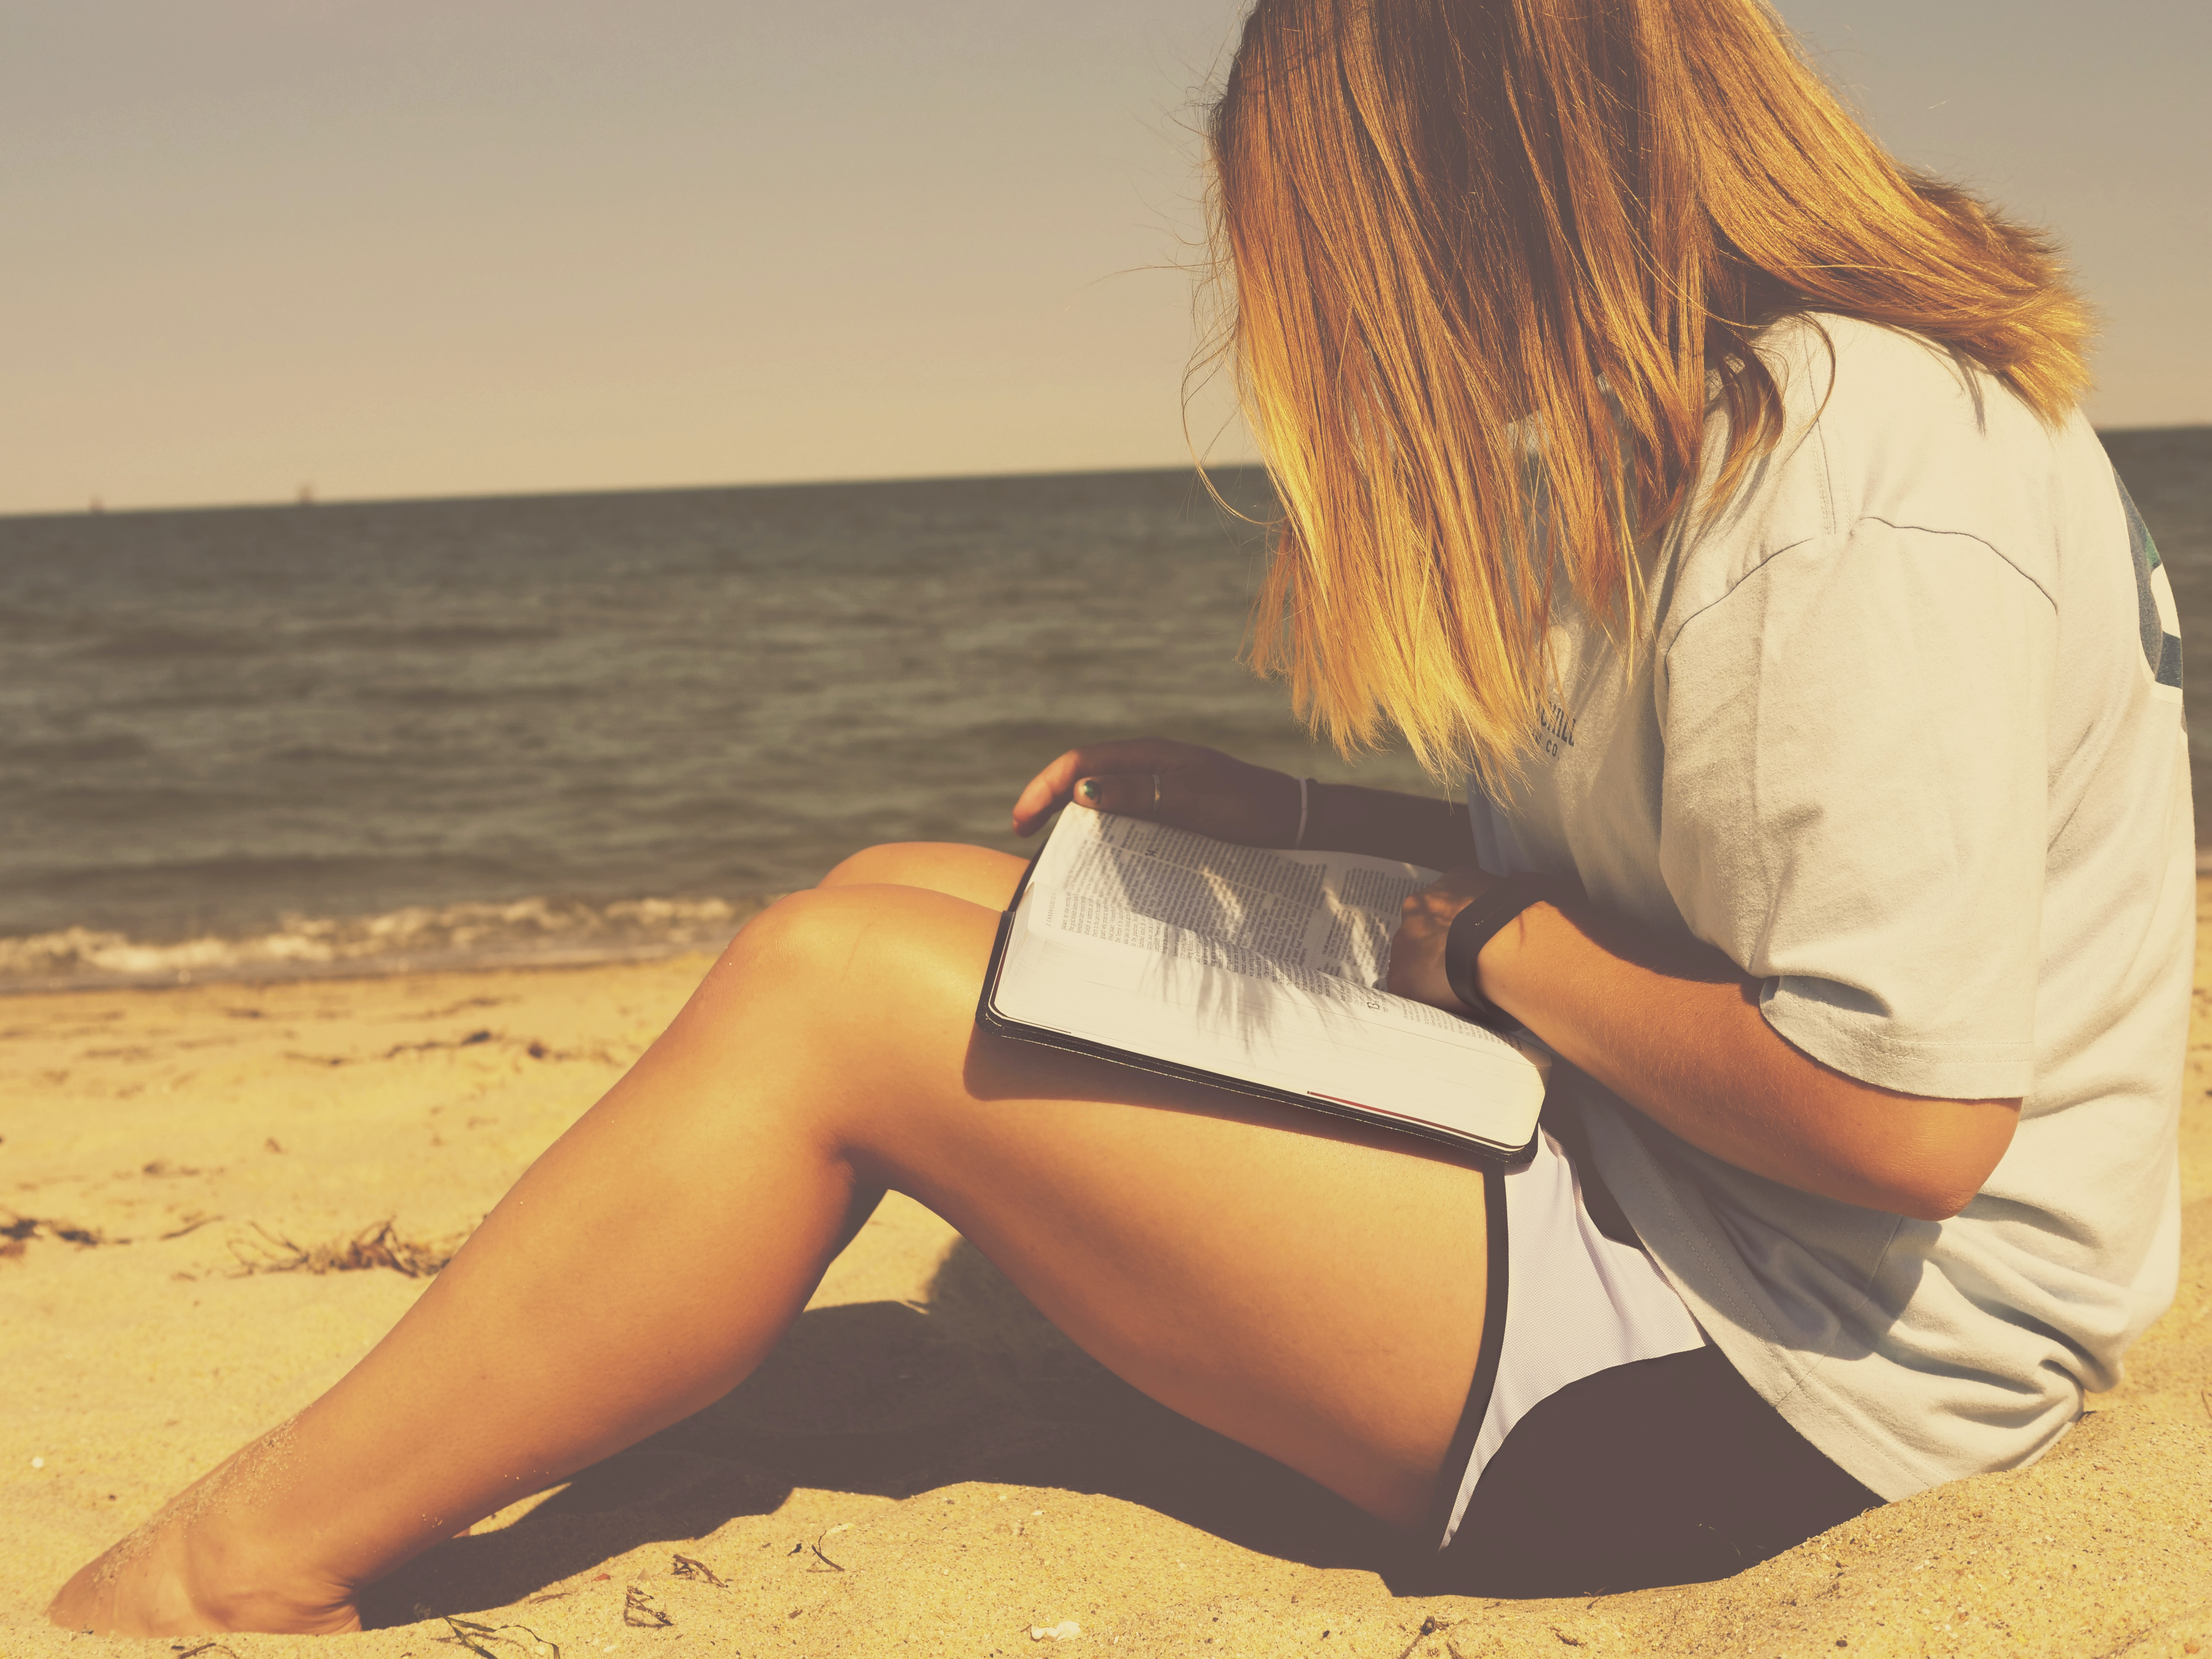 A blonde woman sitting on the beach looking at her book.